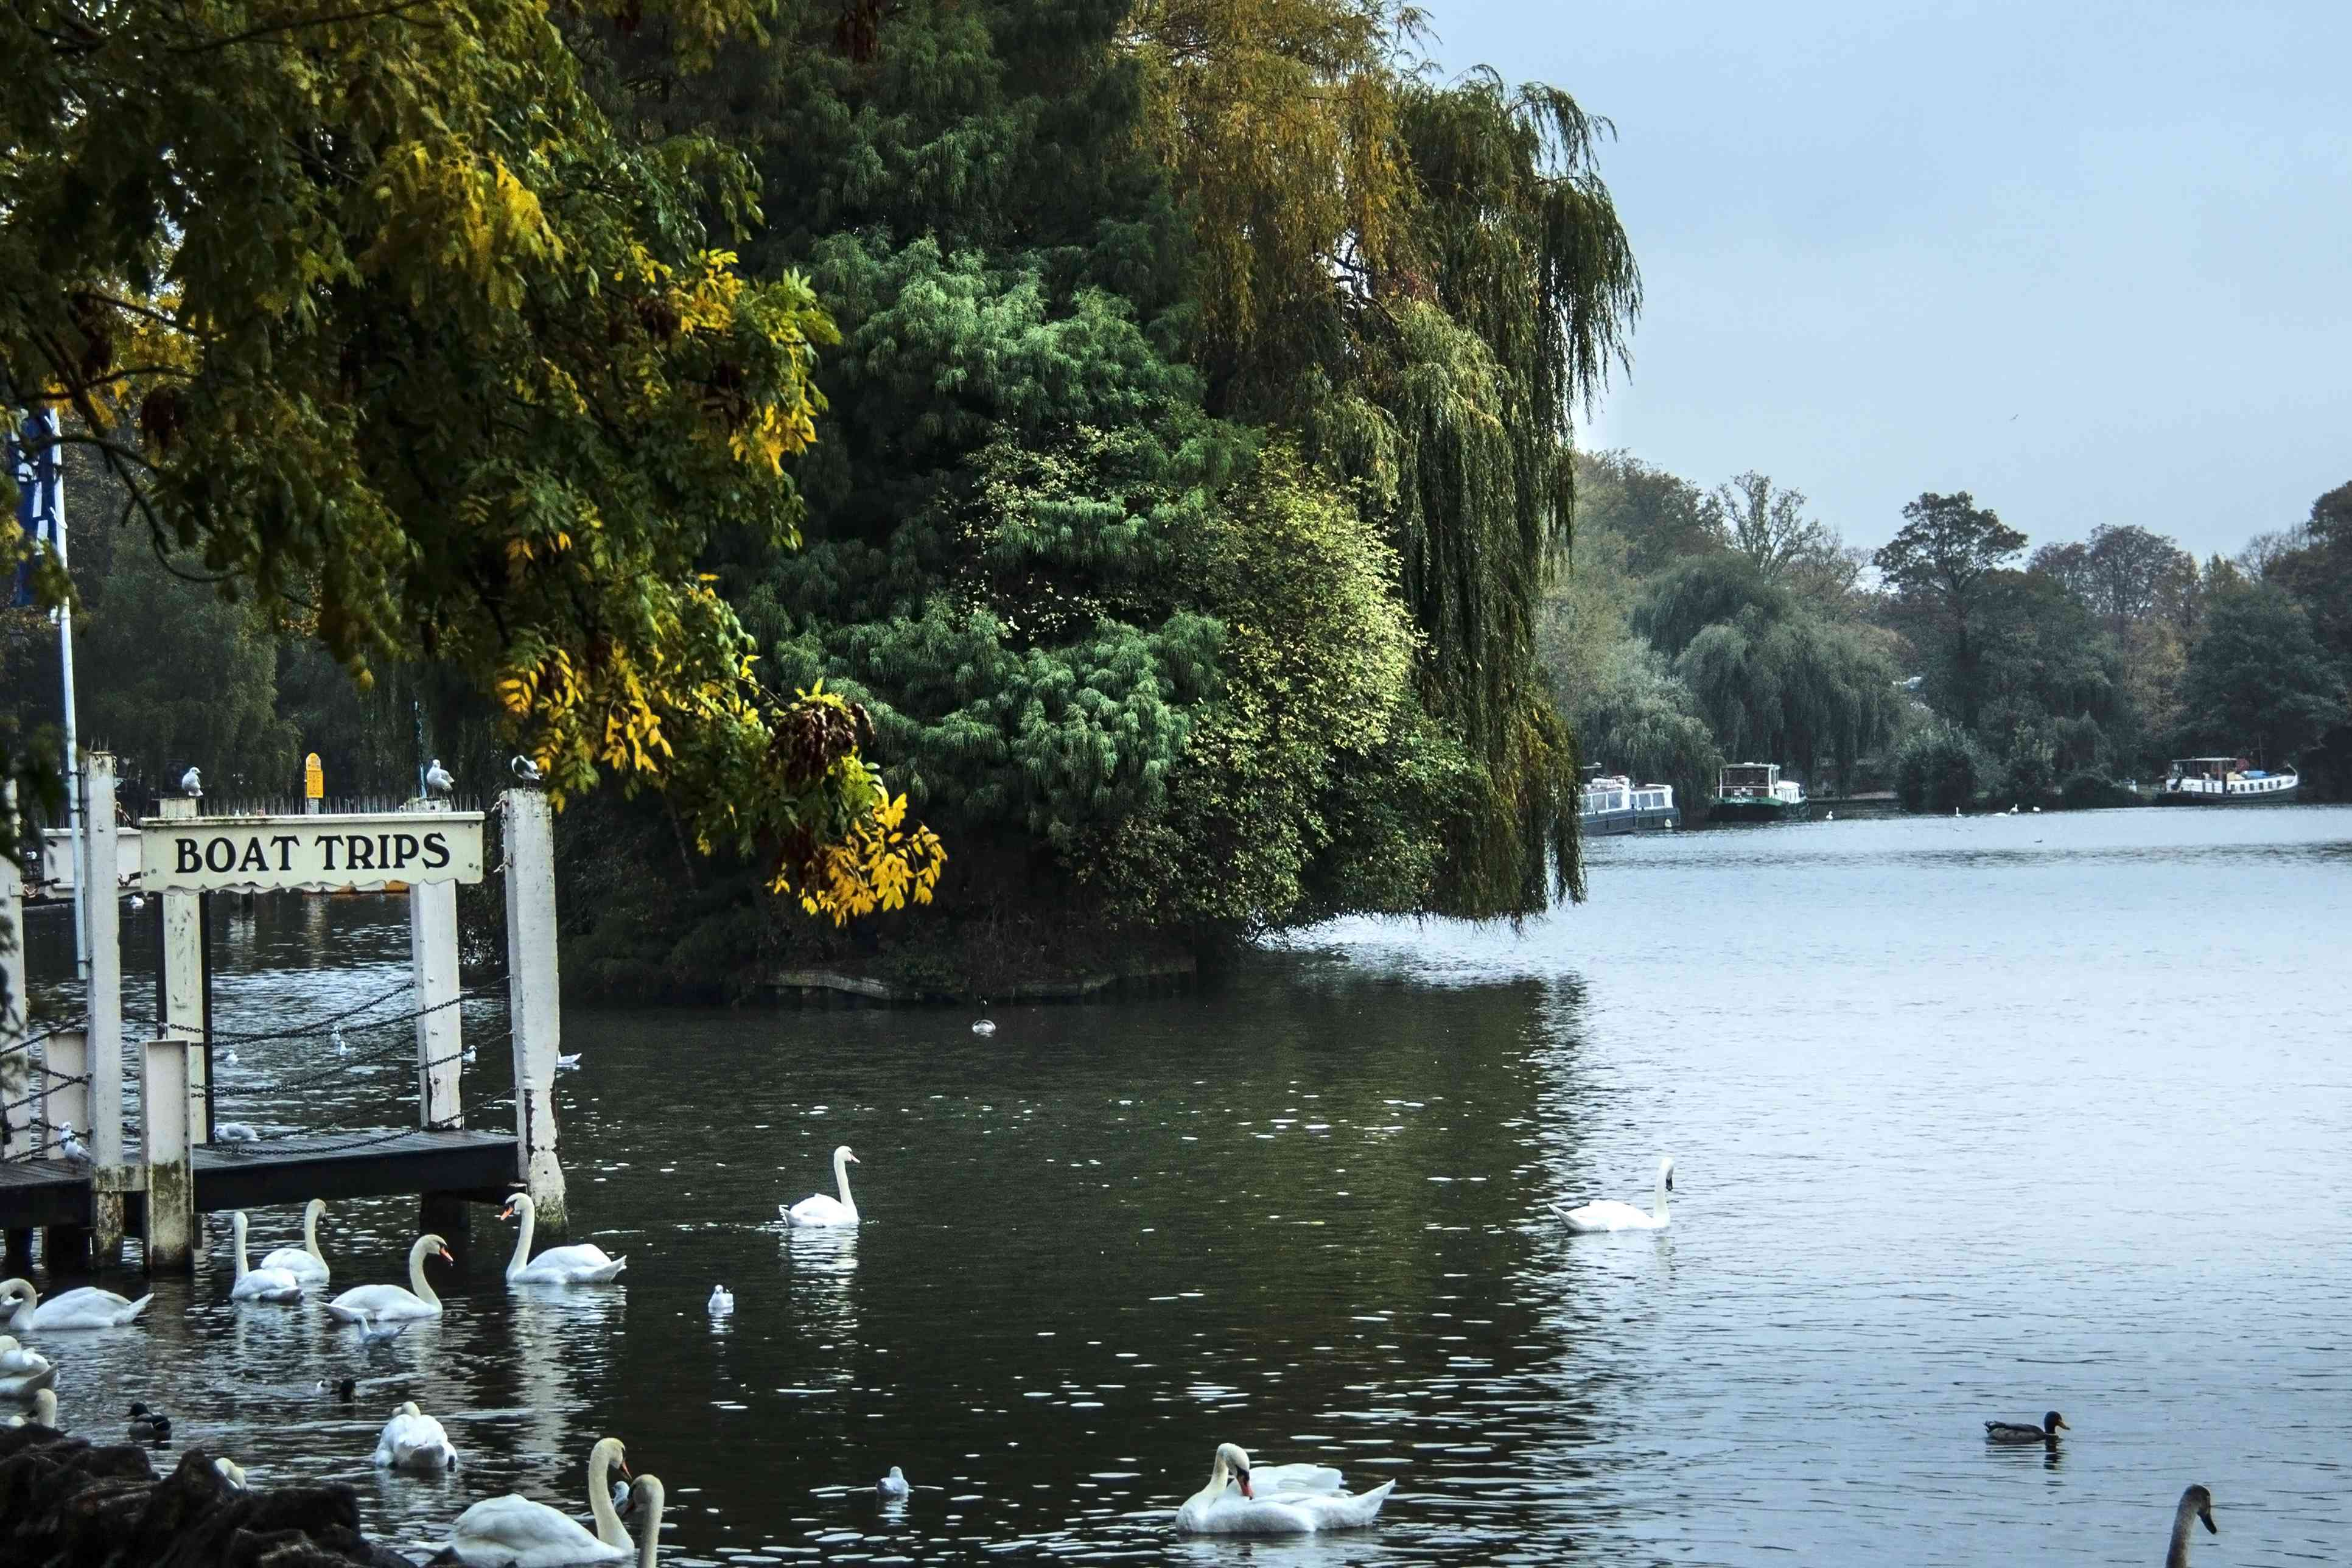 swans resting on the Thames River in England. Windsor, Berkshire, UK. There are large trees on the rives